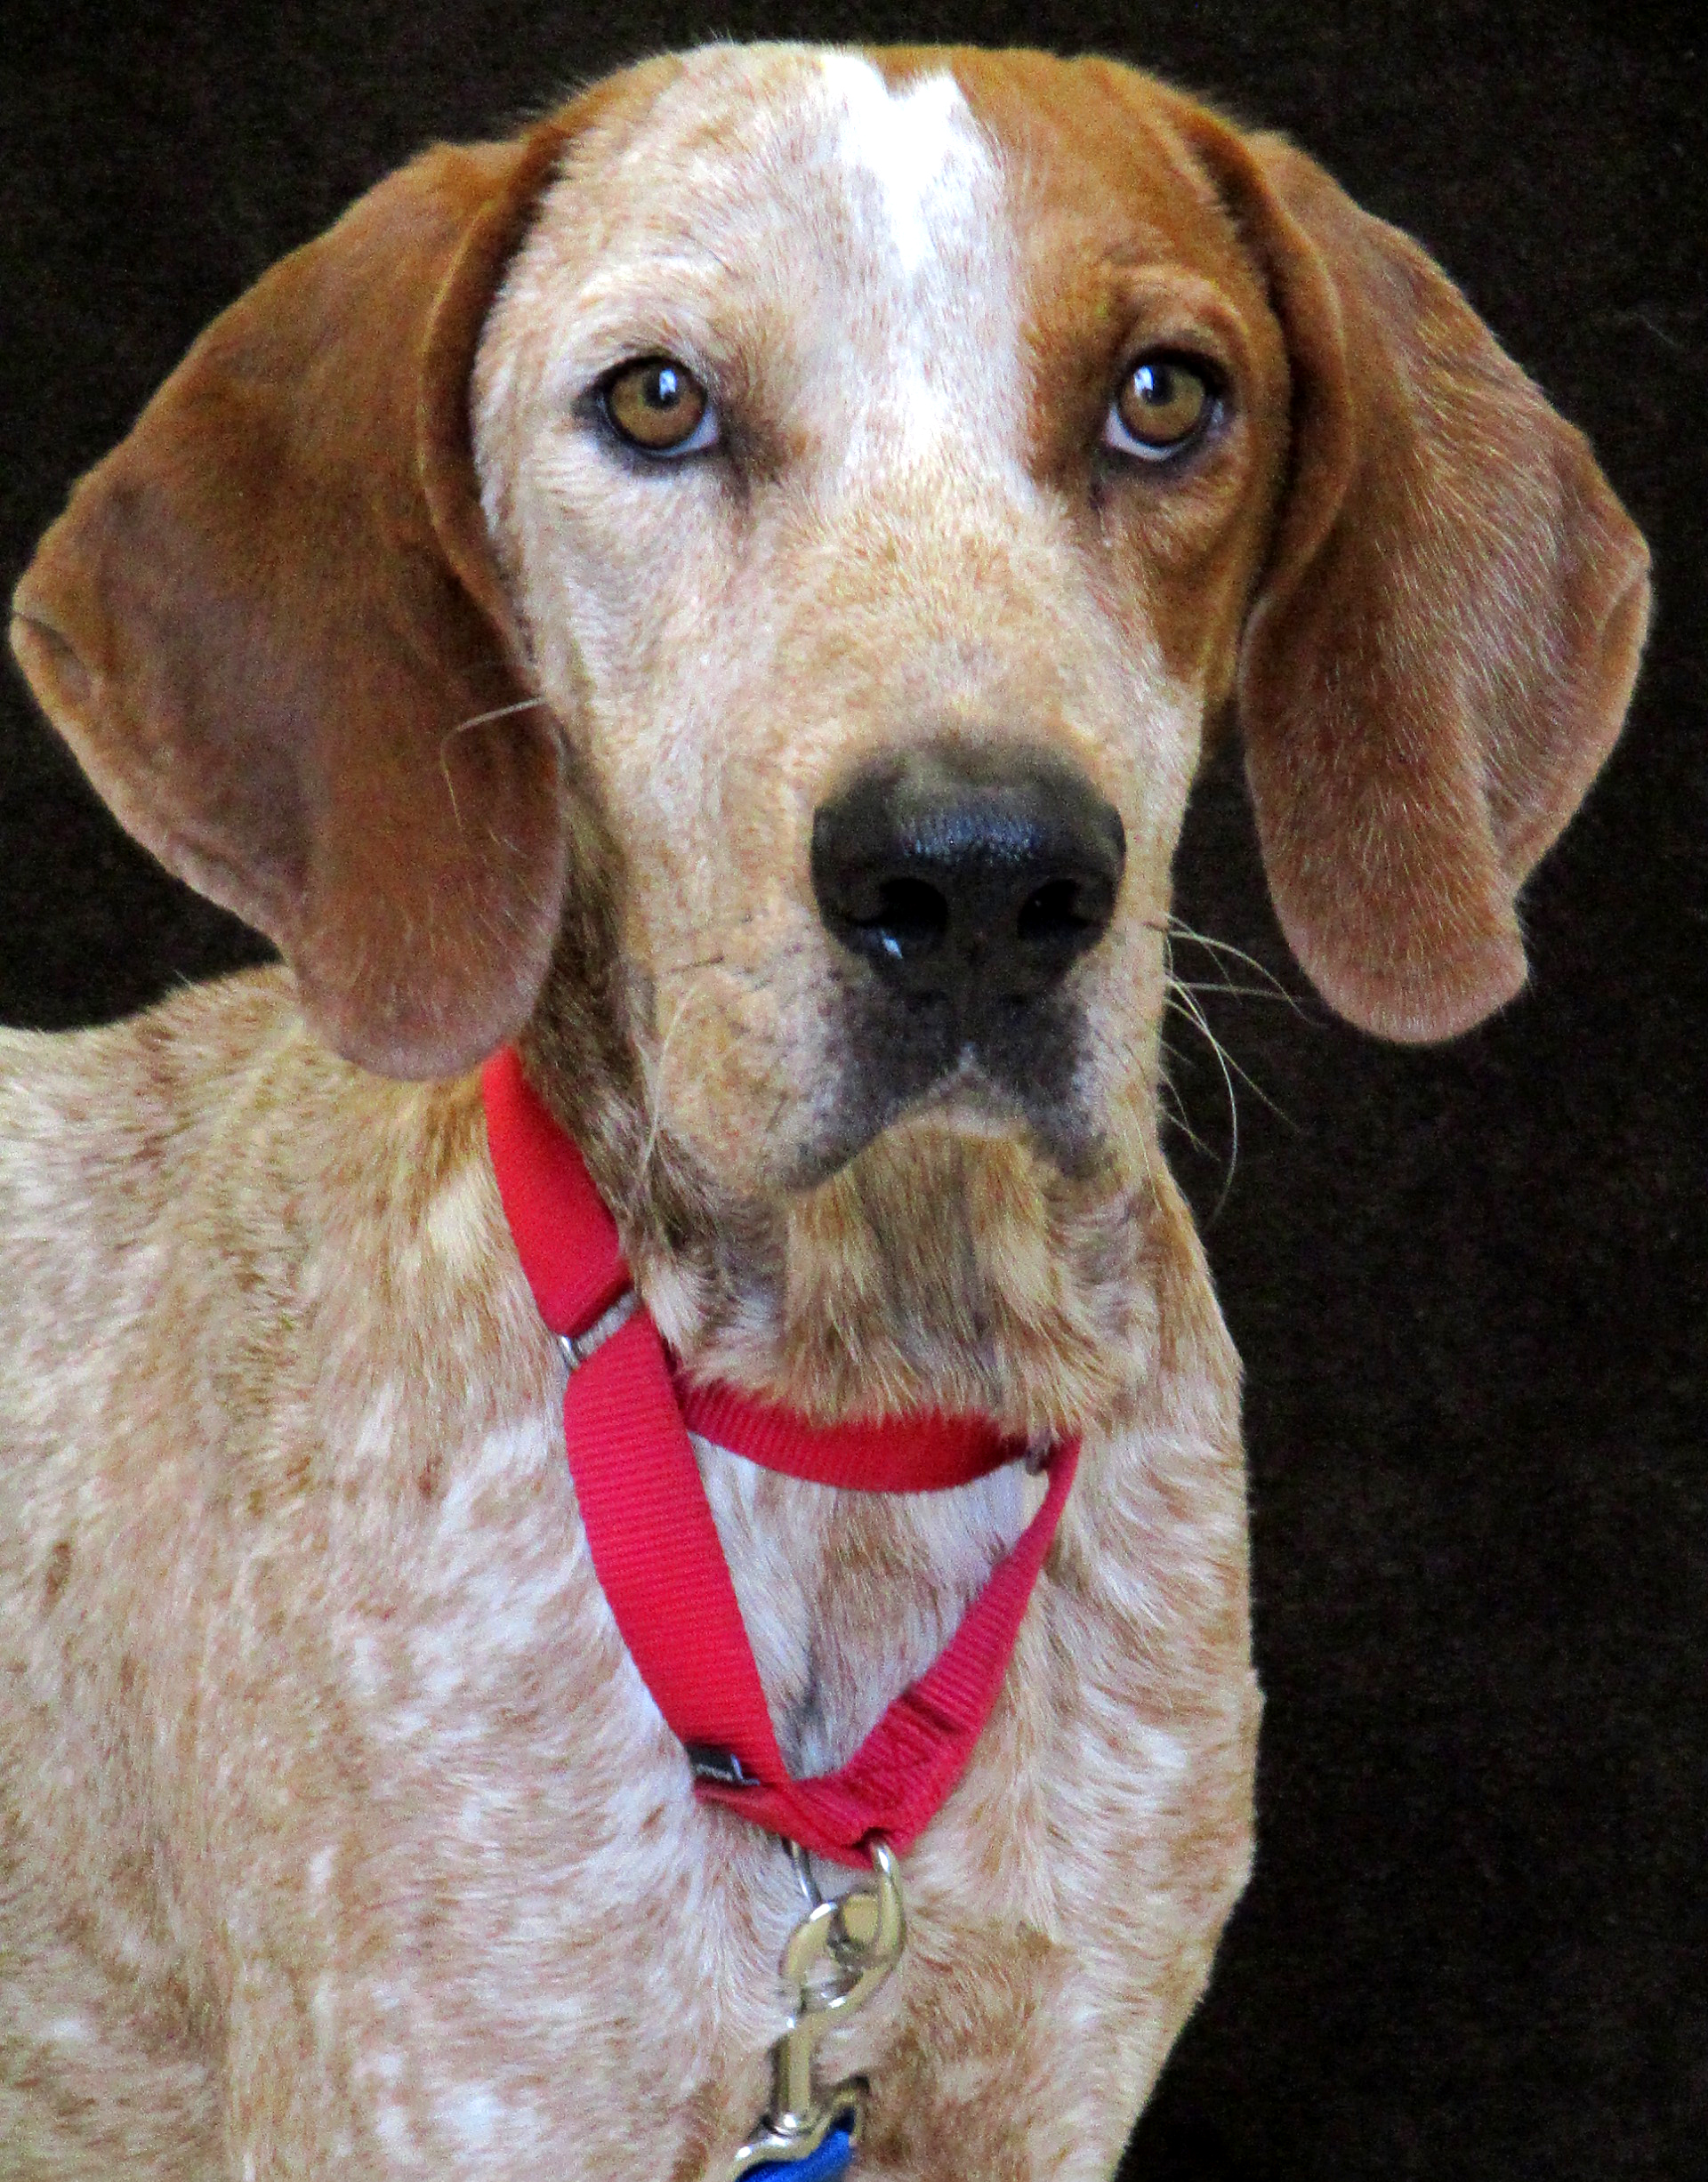 Red is a 4 year old Coonhound. He is a tall and active boy that loves searching for lost food in low and high places. He is a not a fan of sharing the attention of his people so he would do best being the only pet in the house. He is an active boy that would love to be a part of an energetic household.